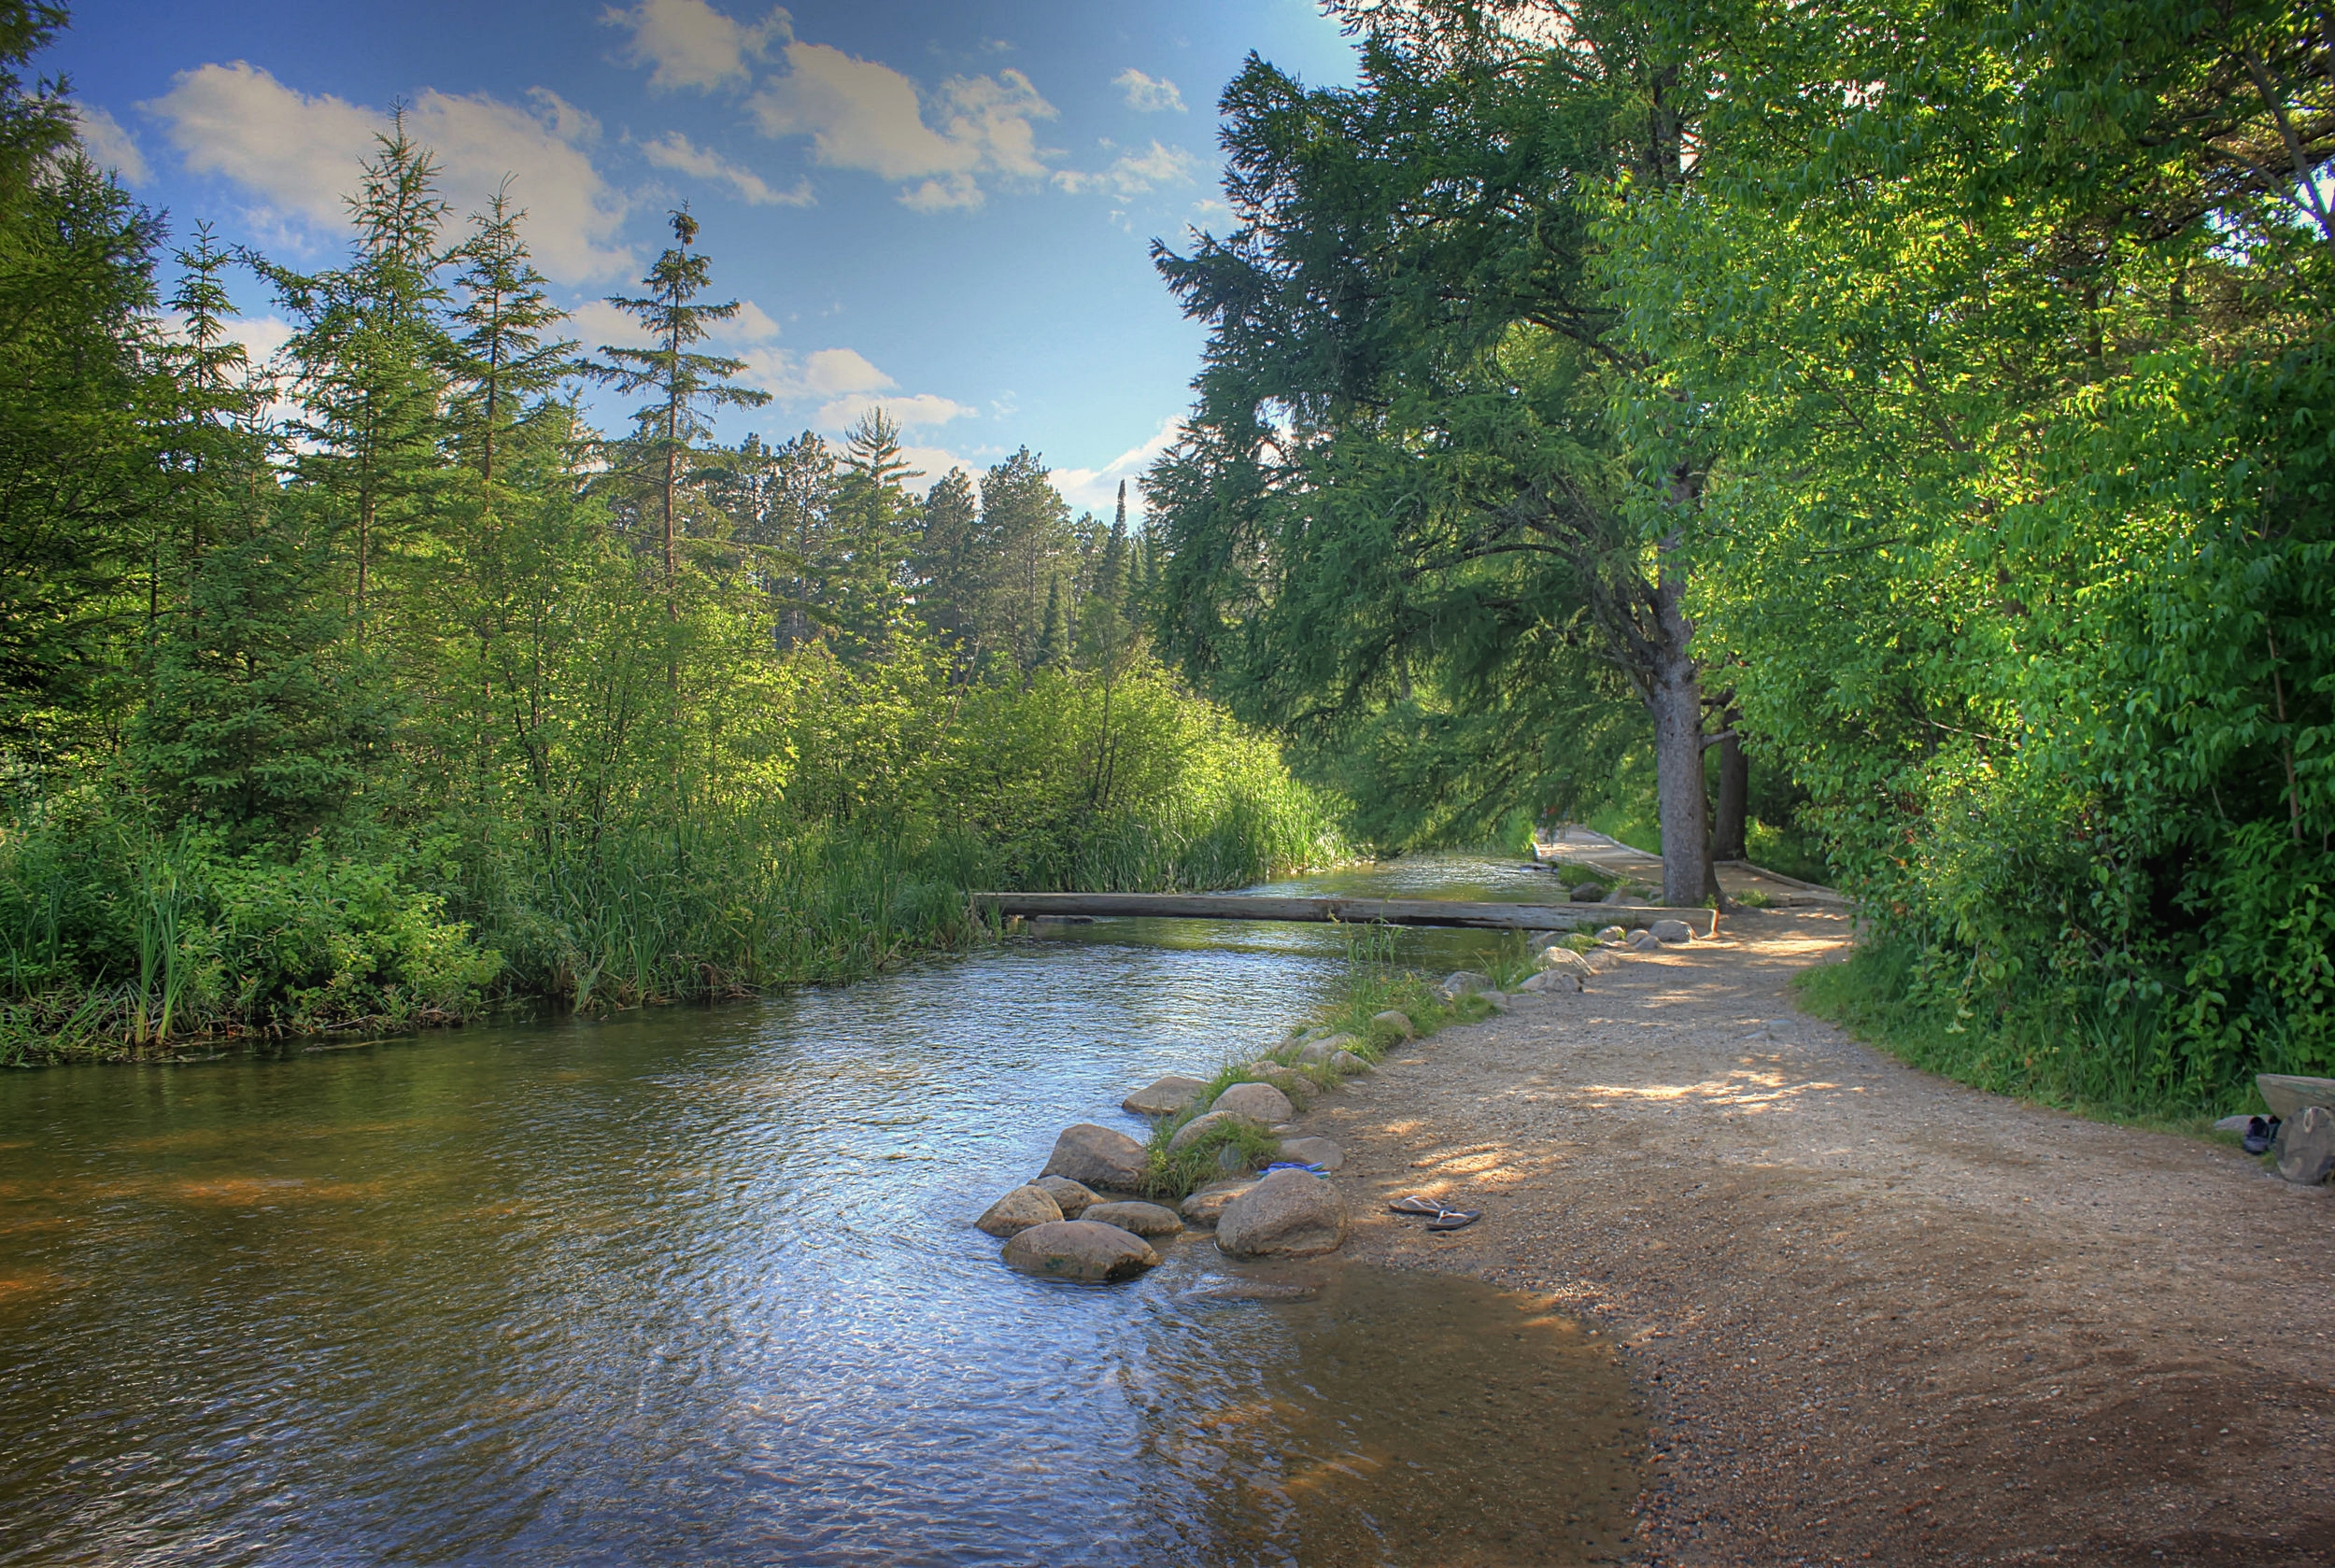 minnesota-lake-itasca-state-park-the-start-of-the-mighty-river.jpg